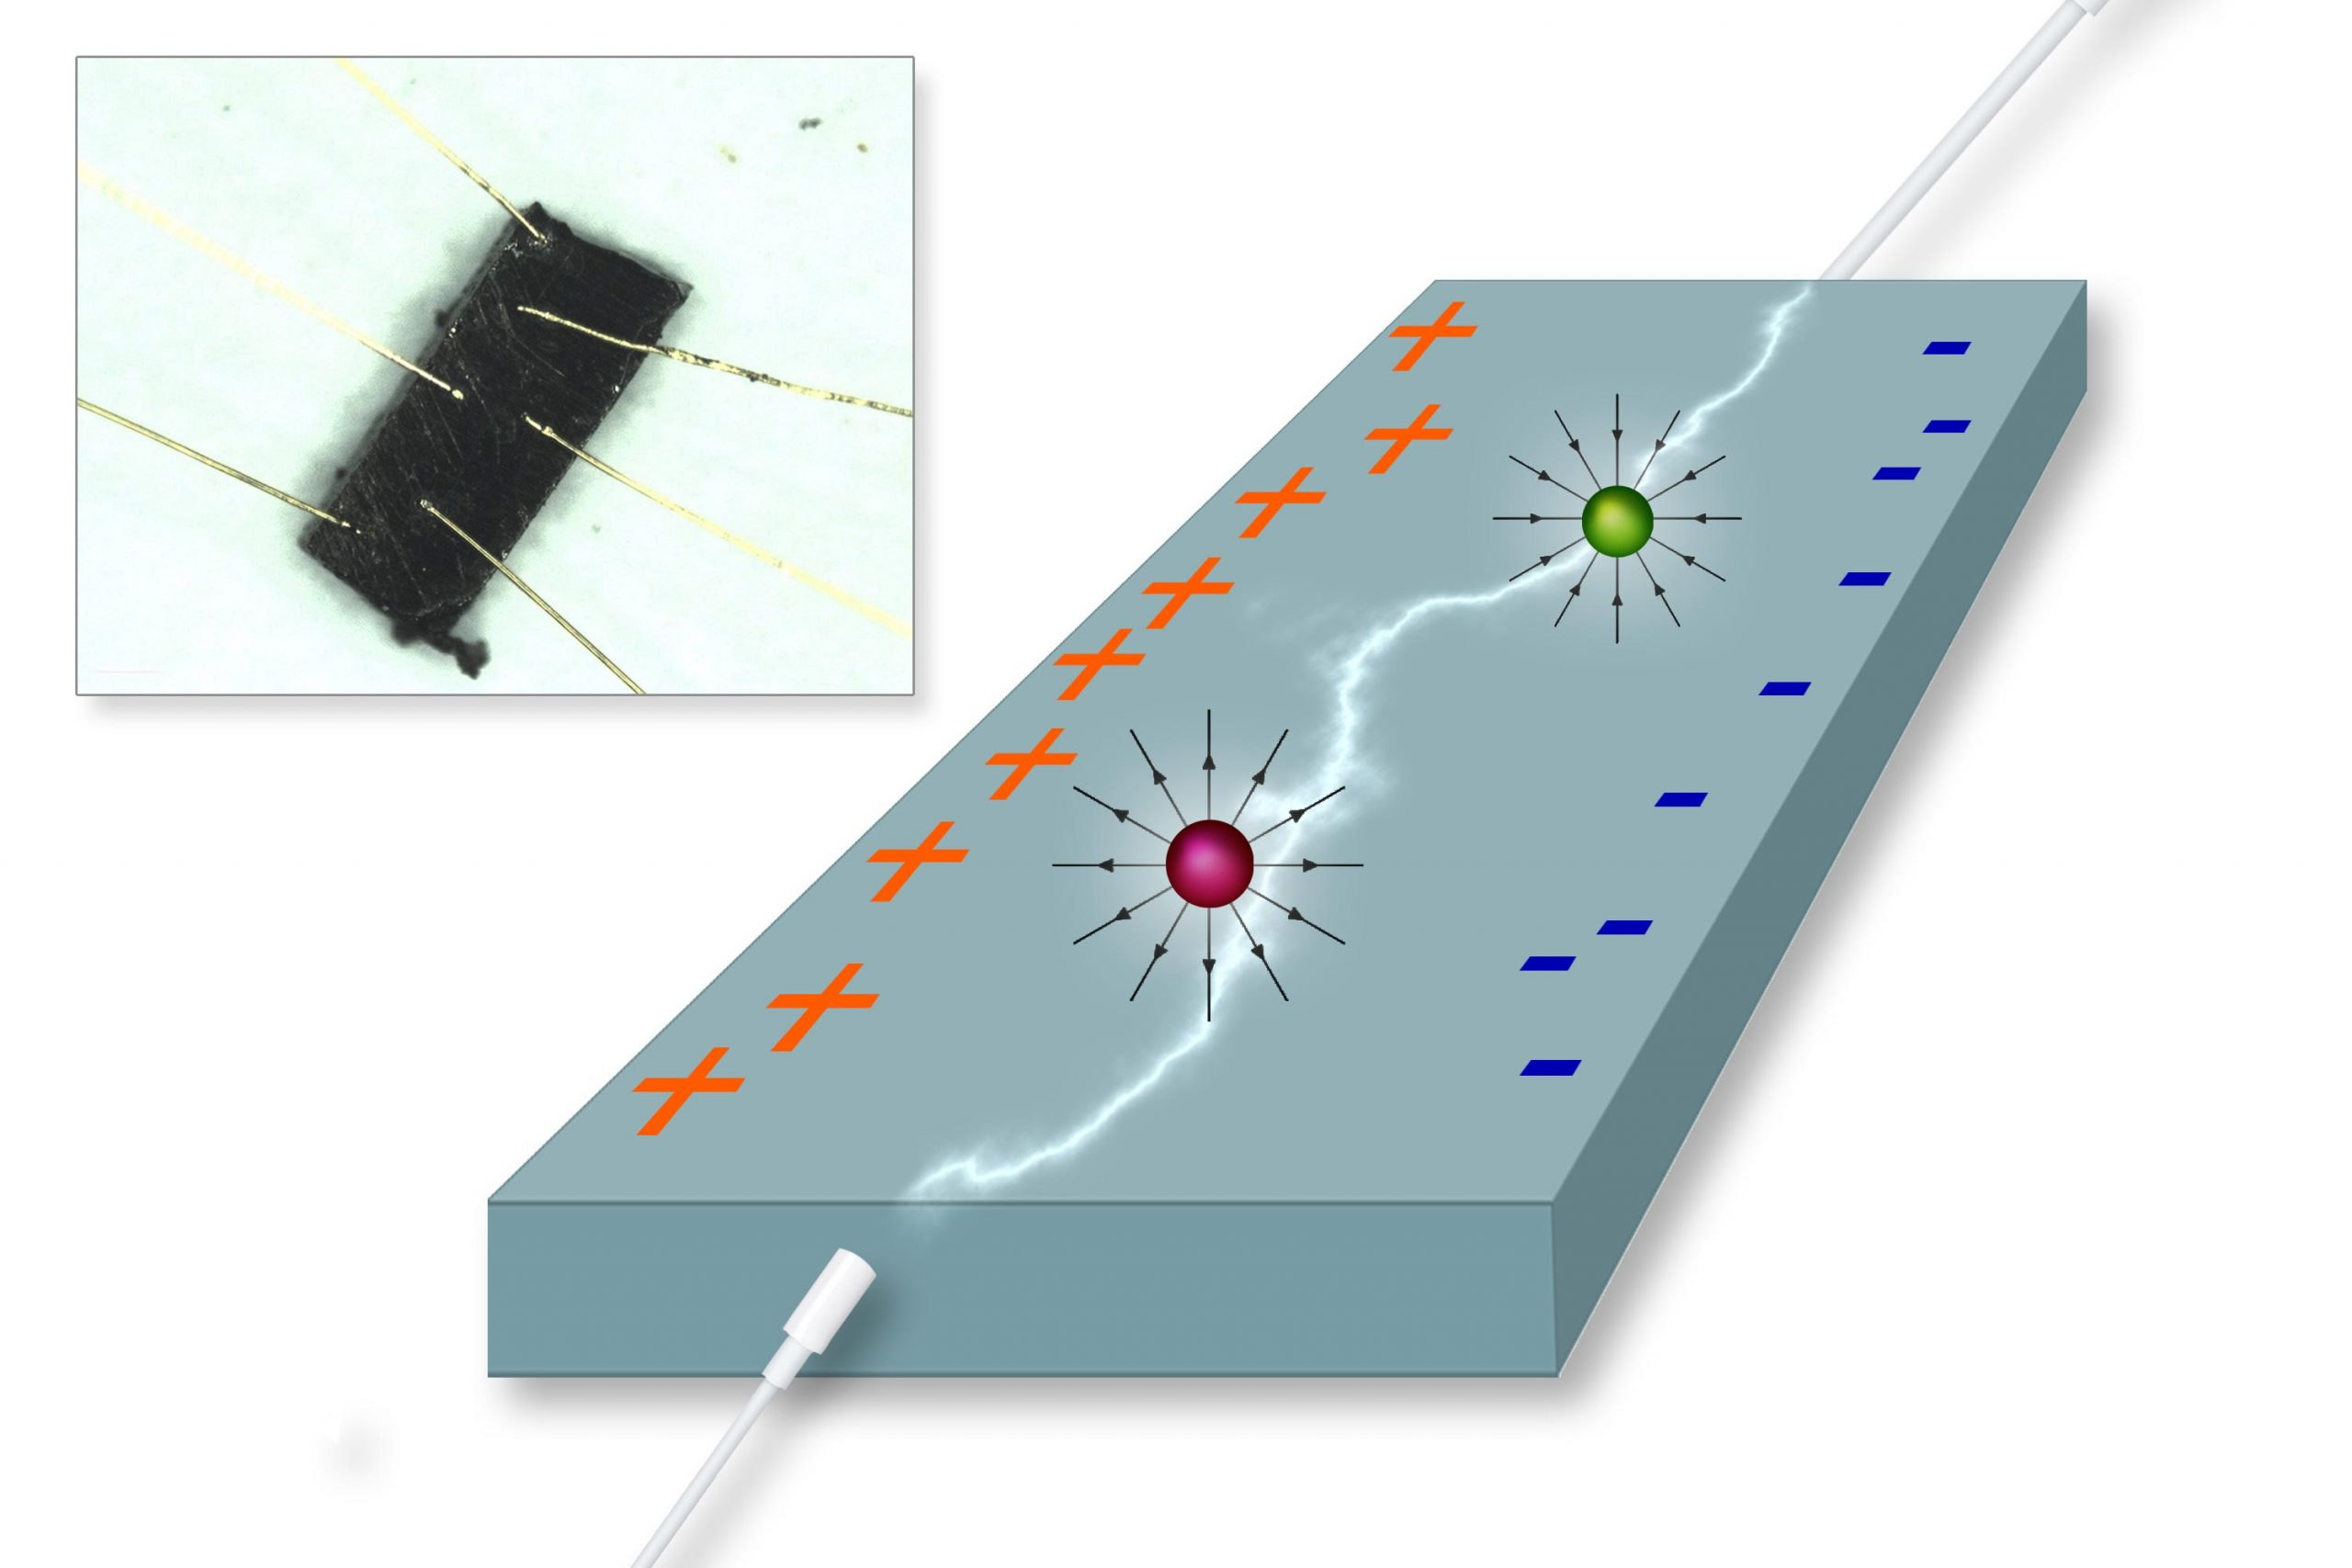 Surprise in Solid-State Physics: Magnetic Effect Without a Magnet